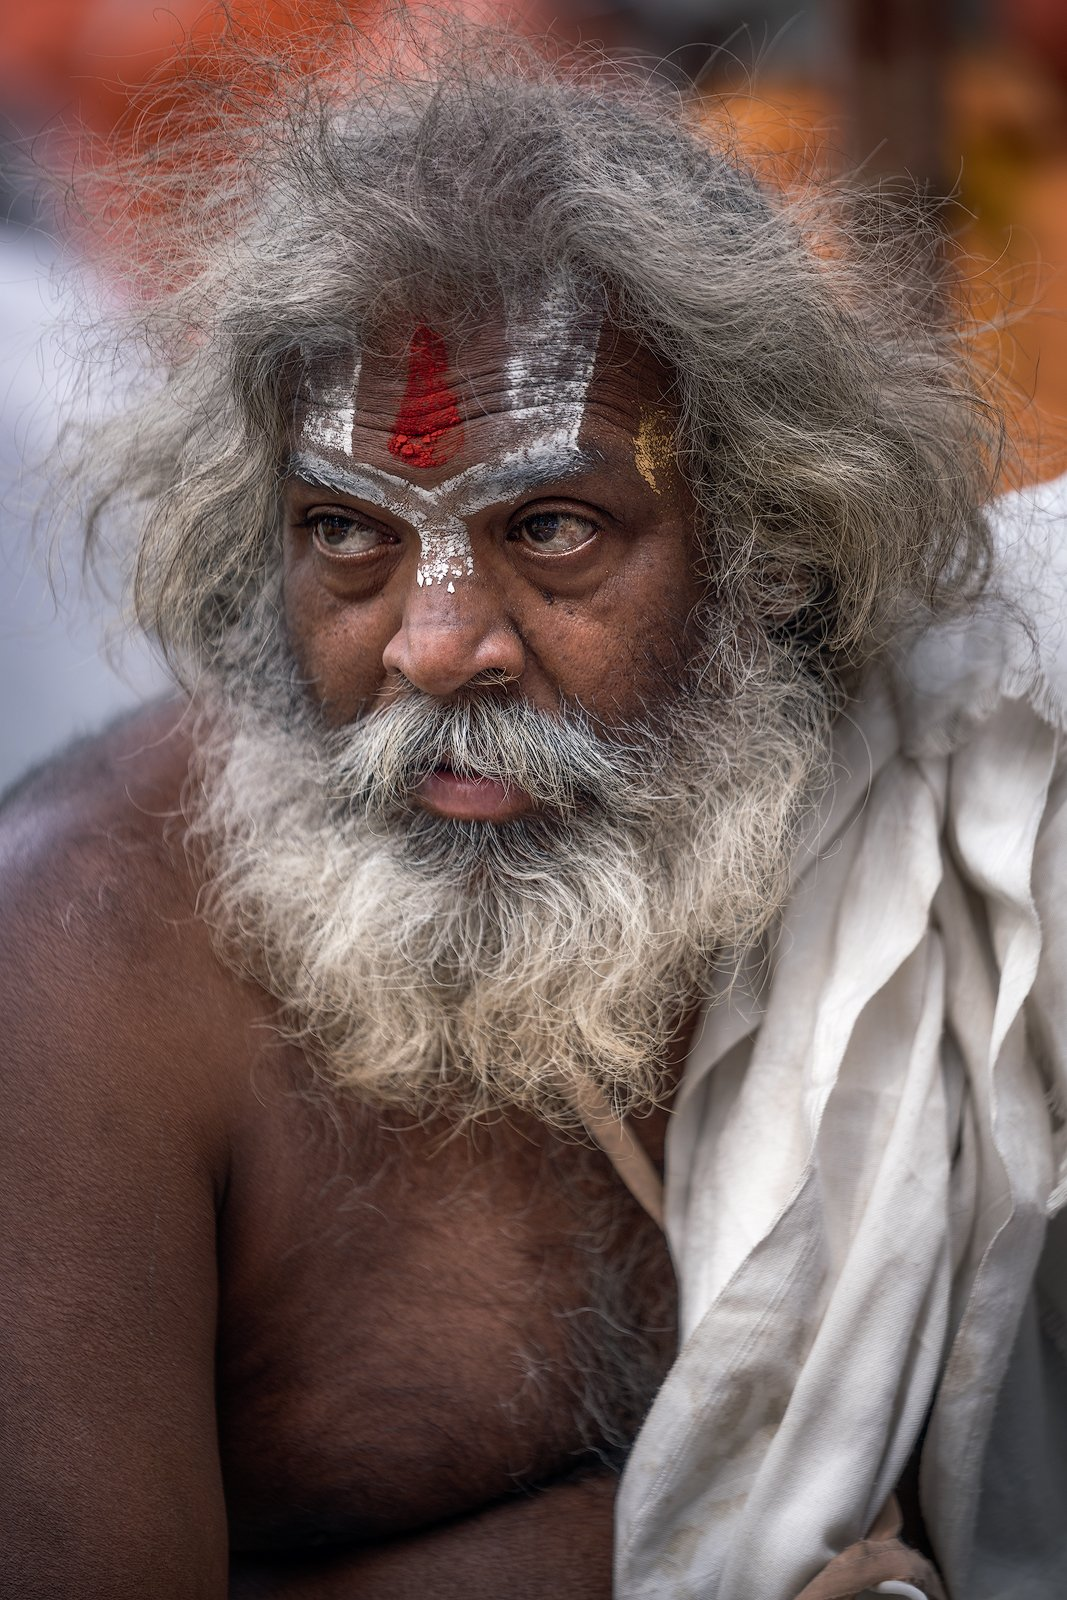 ascetic, baba, beard, beggar, begging, begging bowl, body paint, contemplation, face paint, face painting, god, hindu, hinduism, holy, holy man, india, karma, mala, meditation, moksha, monk, ochre, ochre robe, orange, paint, rishikesh, sadhu, sannyasi, sw, Ludwig Riml